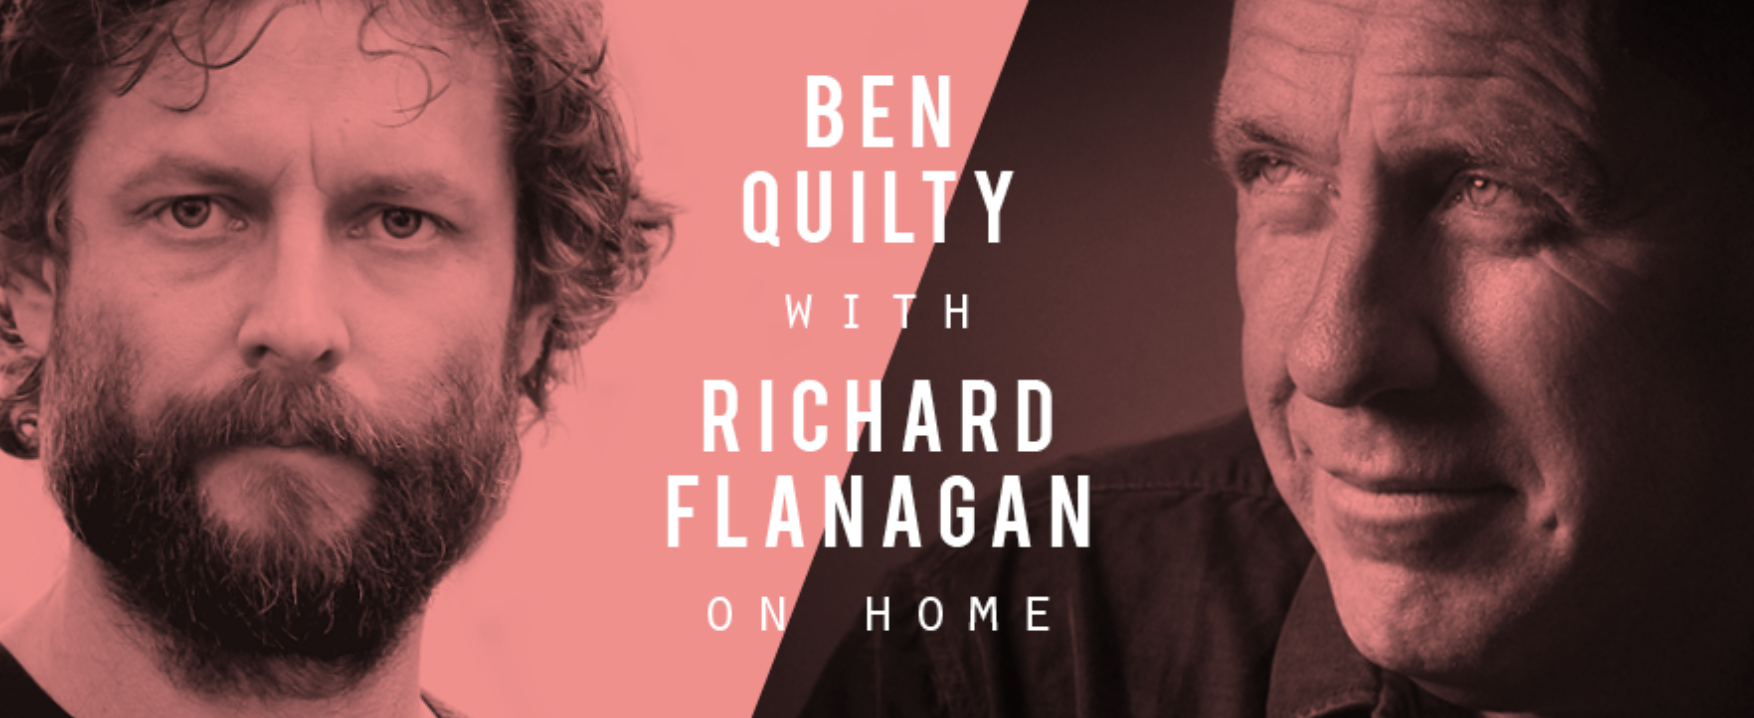 Ben Quilty with Richard Flanagan On Home (TSOL) [Melbourne]